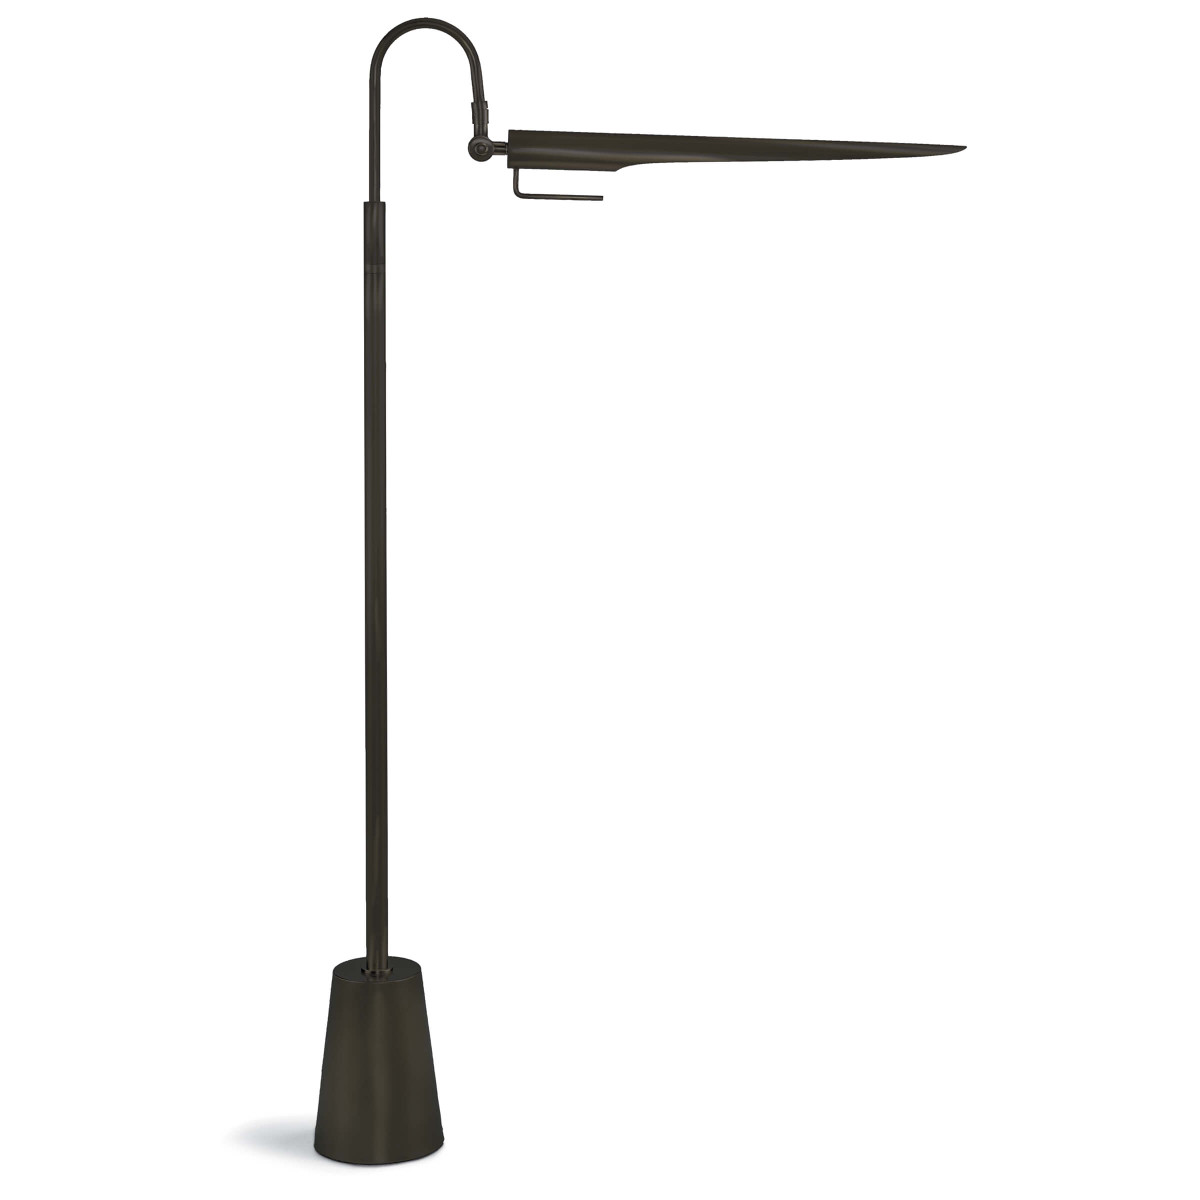 Heron Floor Lamp-$599.00